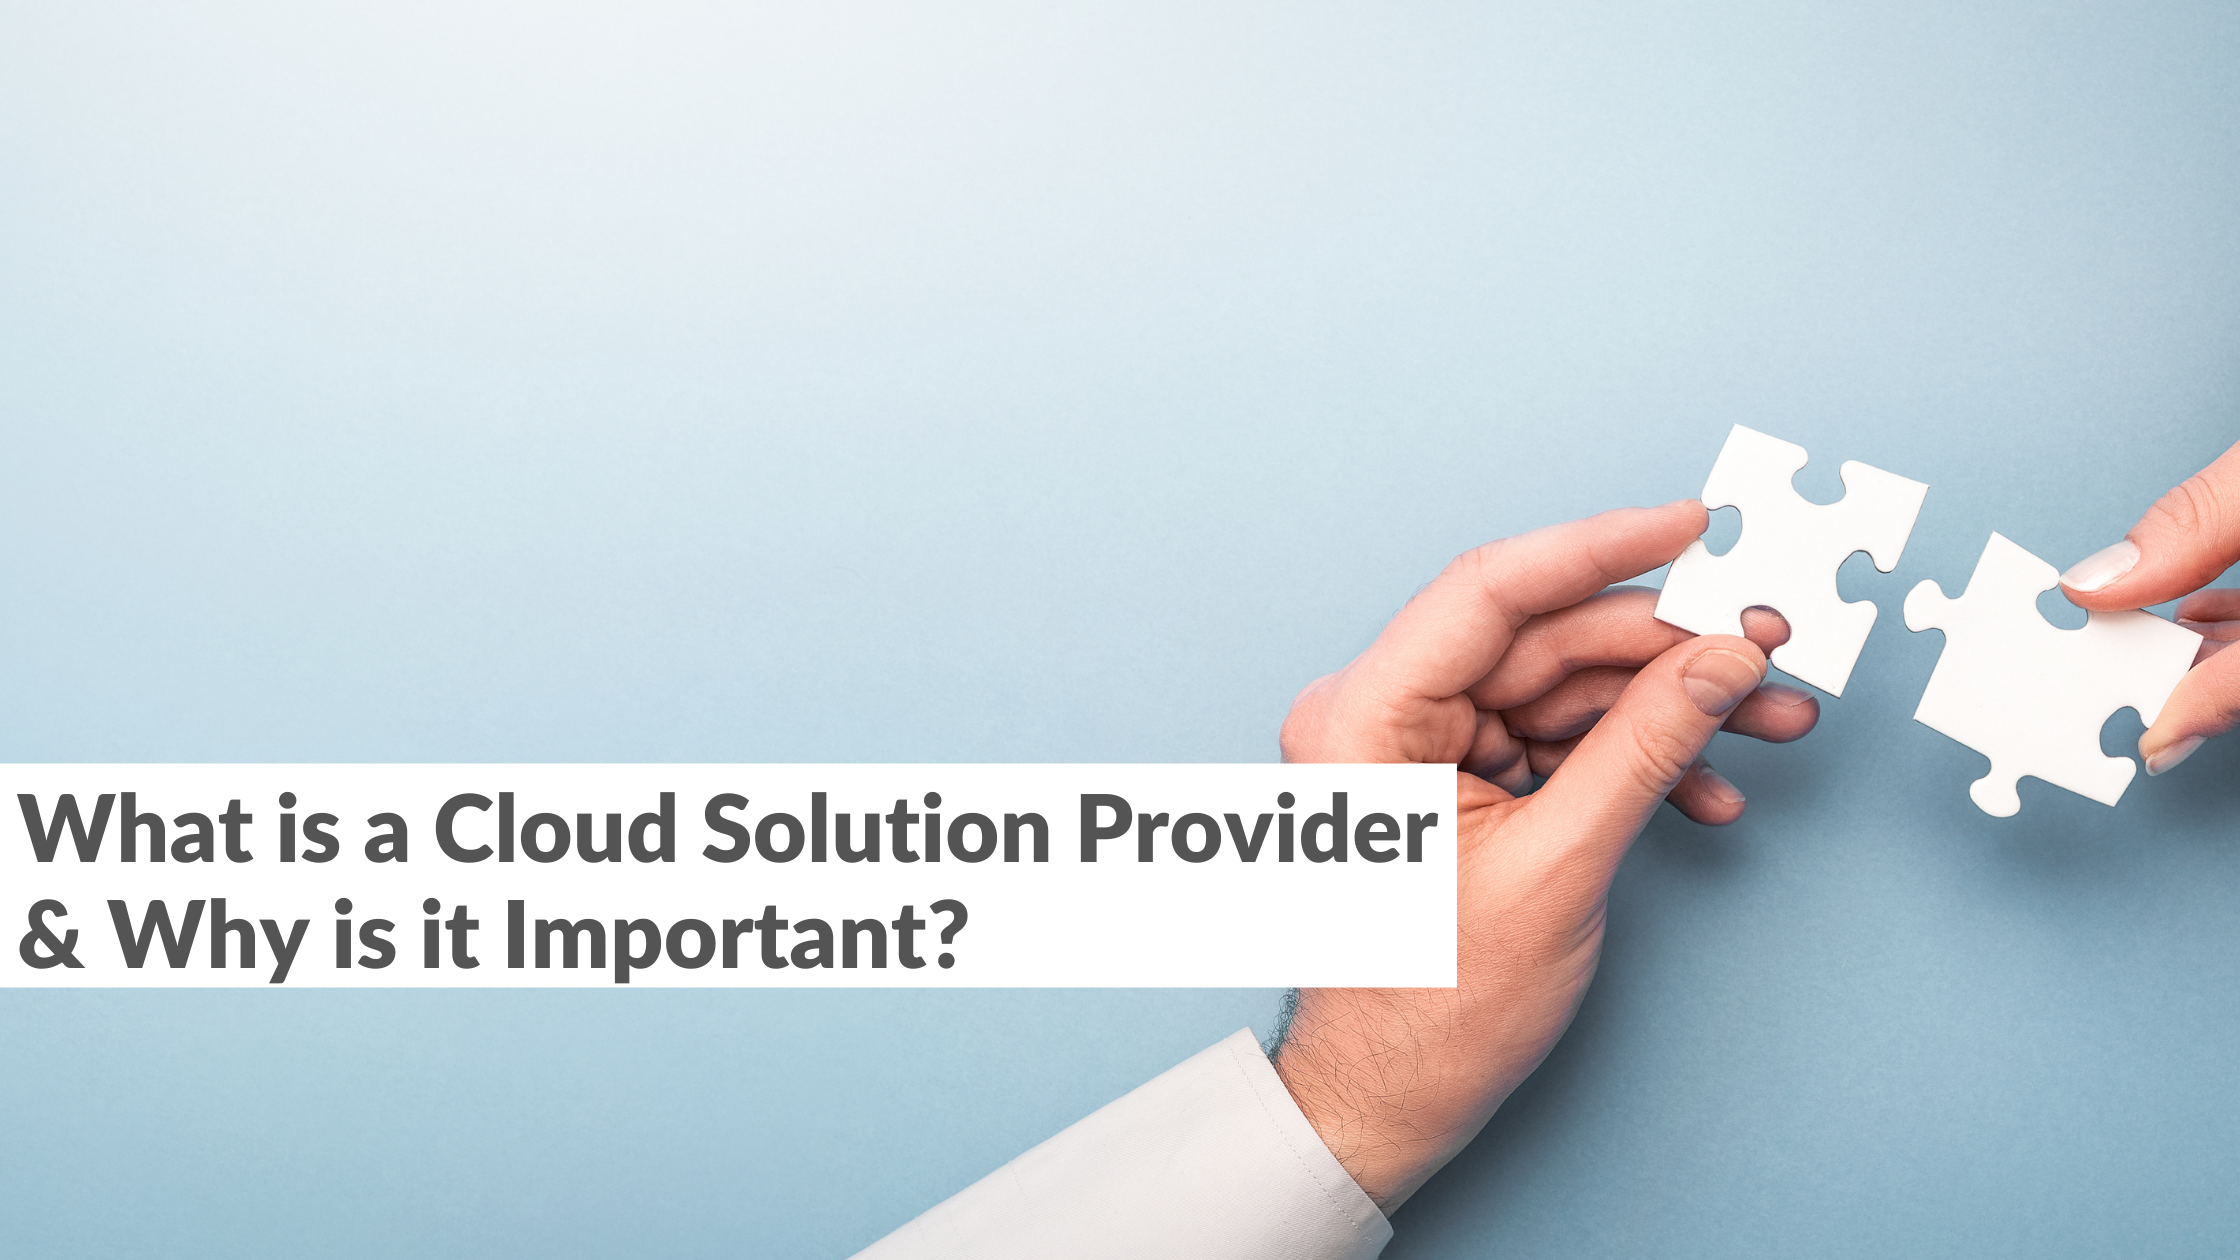 What is a Cloud Solution Provider and Why is it Important?